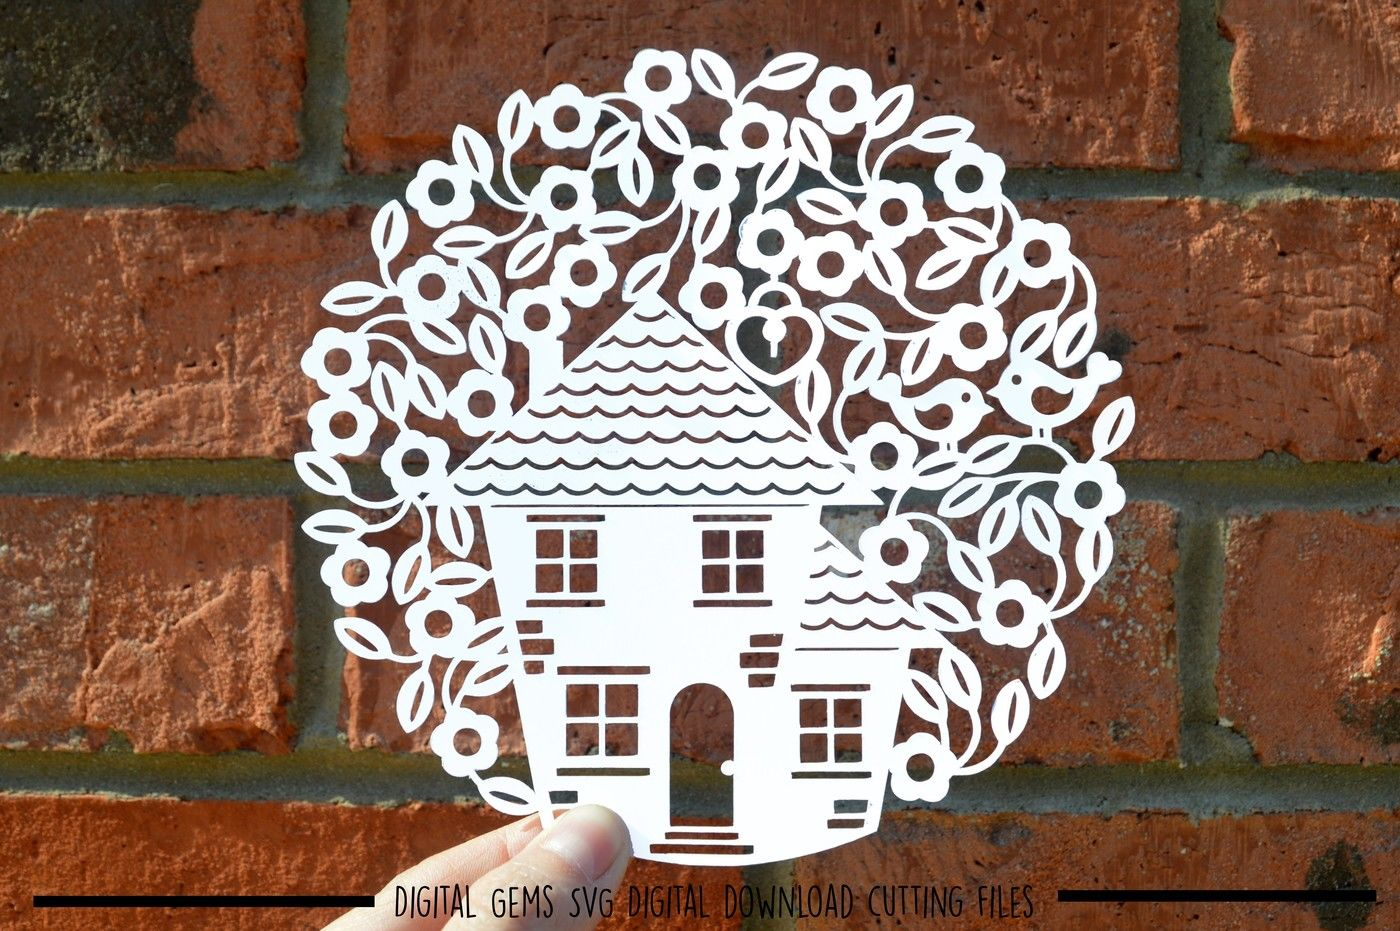 New Home Paper Cut Svg Dxf Eps Files By Digital Gems Thehungryjpeg Com